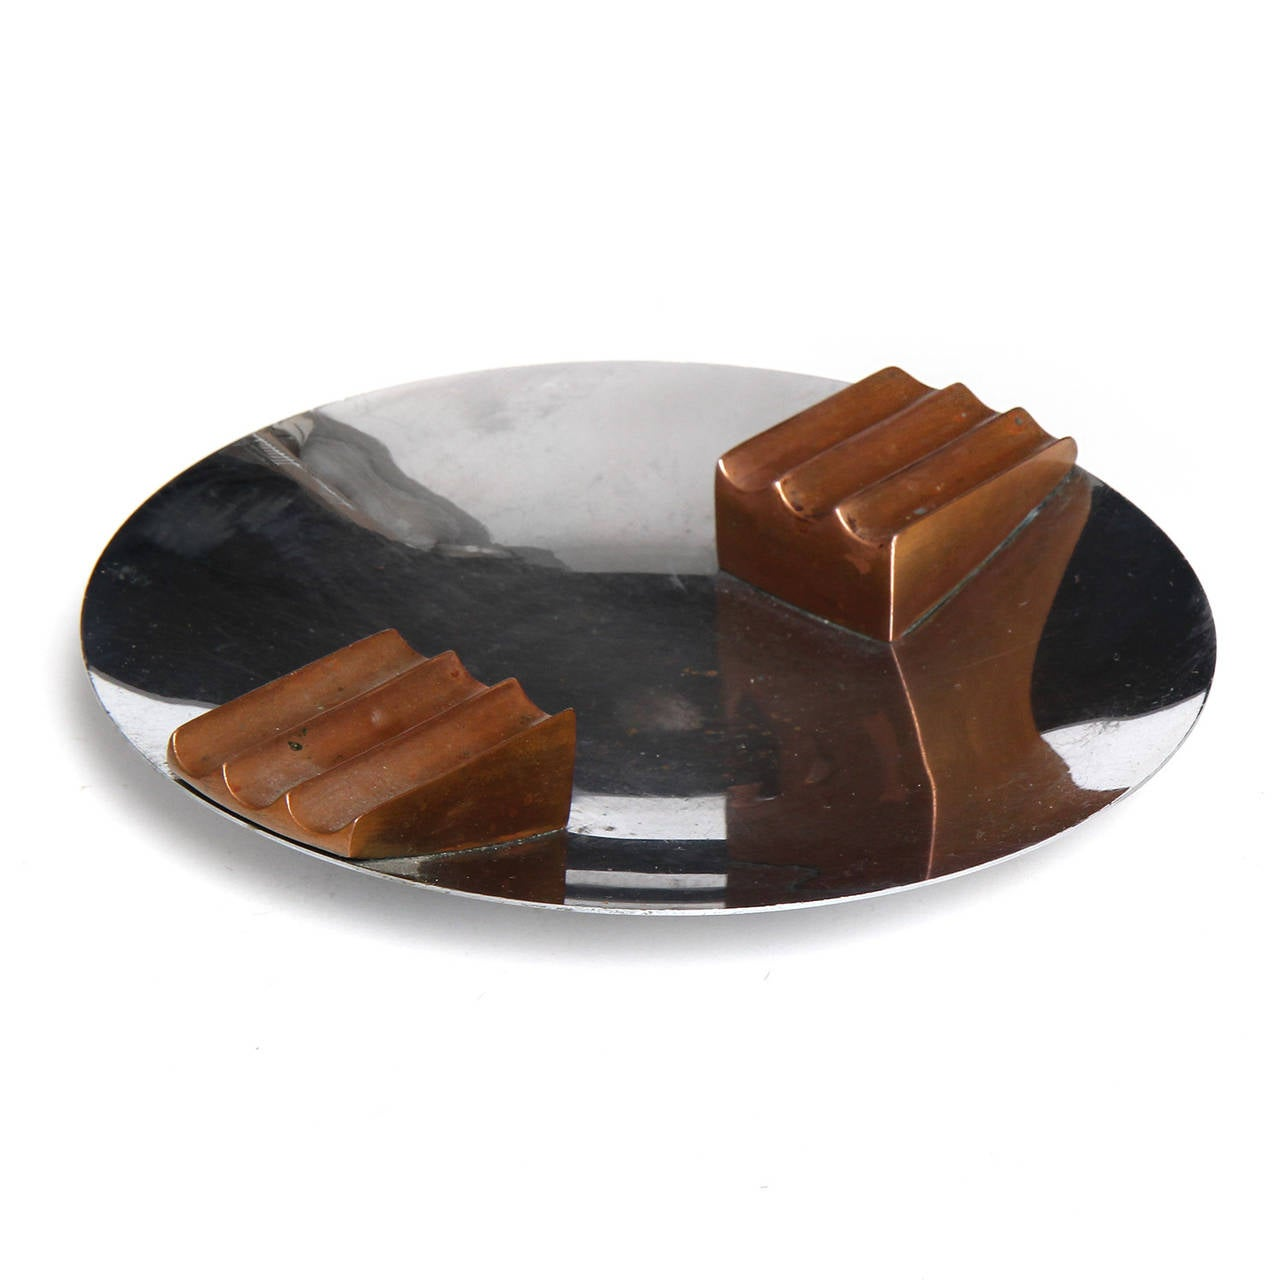 Modernist Ashtray By Leslie Beaton At 1stdibs